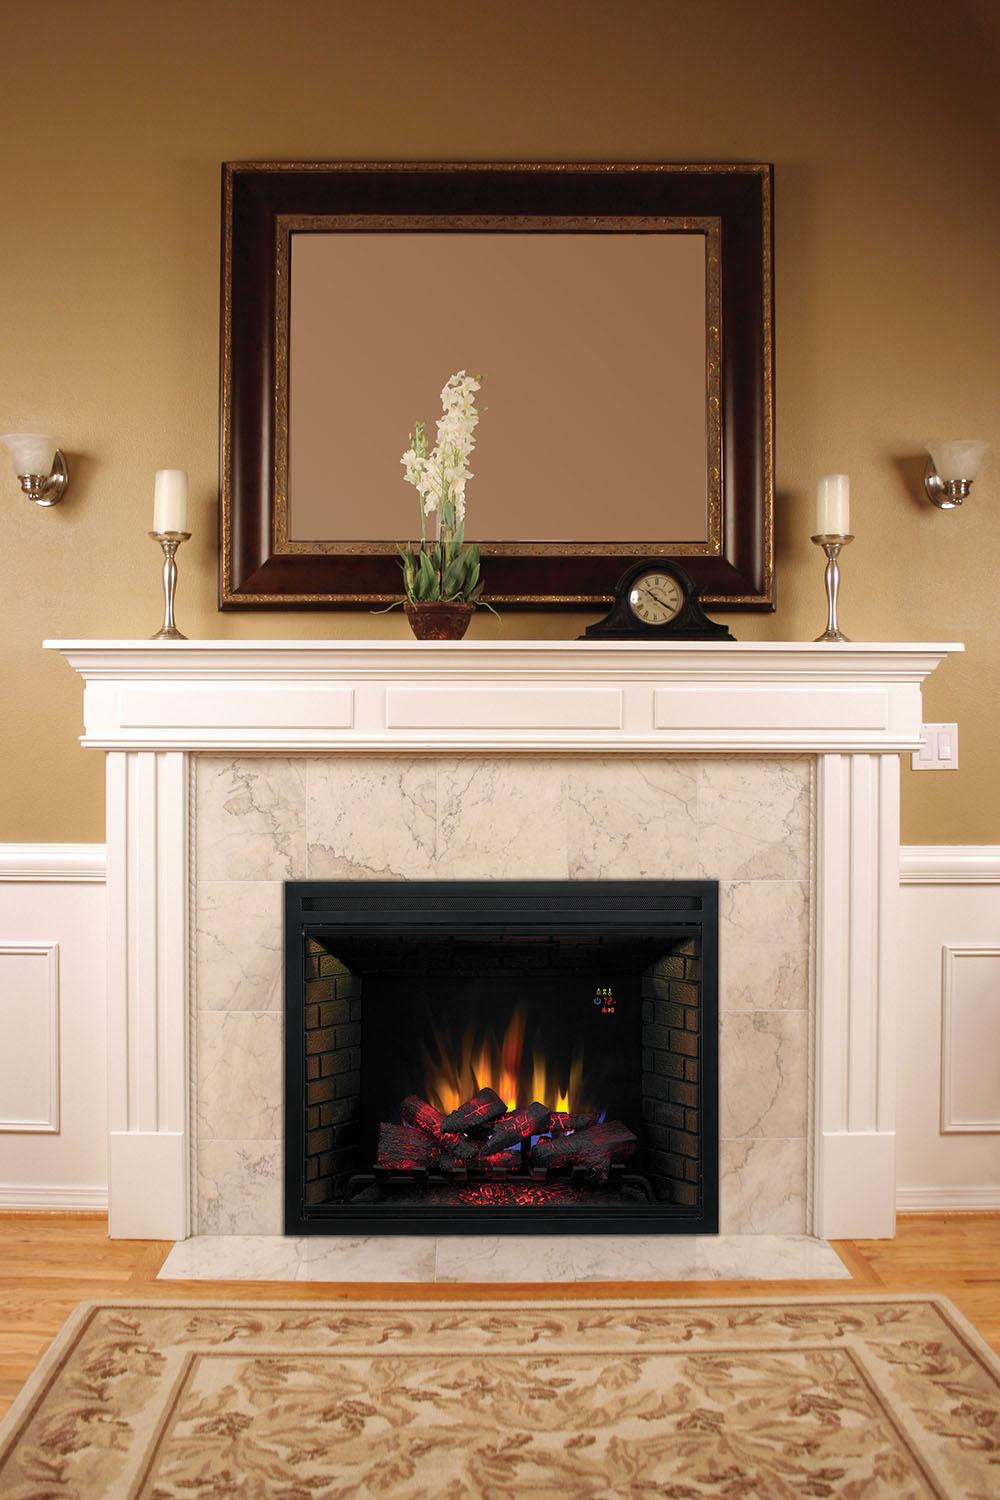 "Amazon.com: ClassicFlame 39EB500GRA 39"" Traditional Built-in Electric Fireplace Insert"